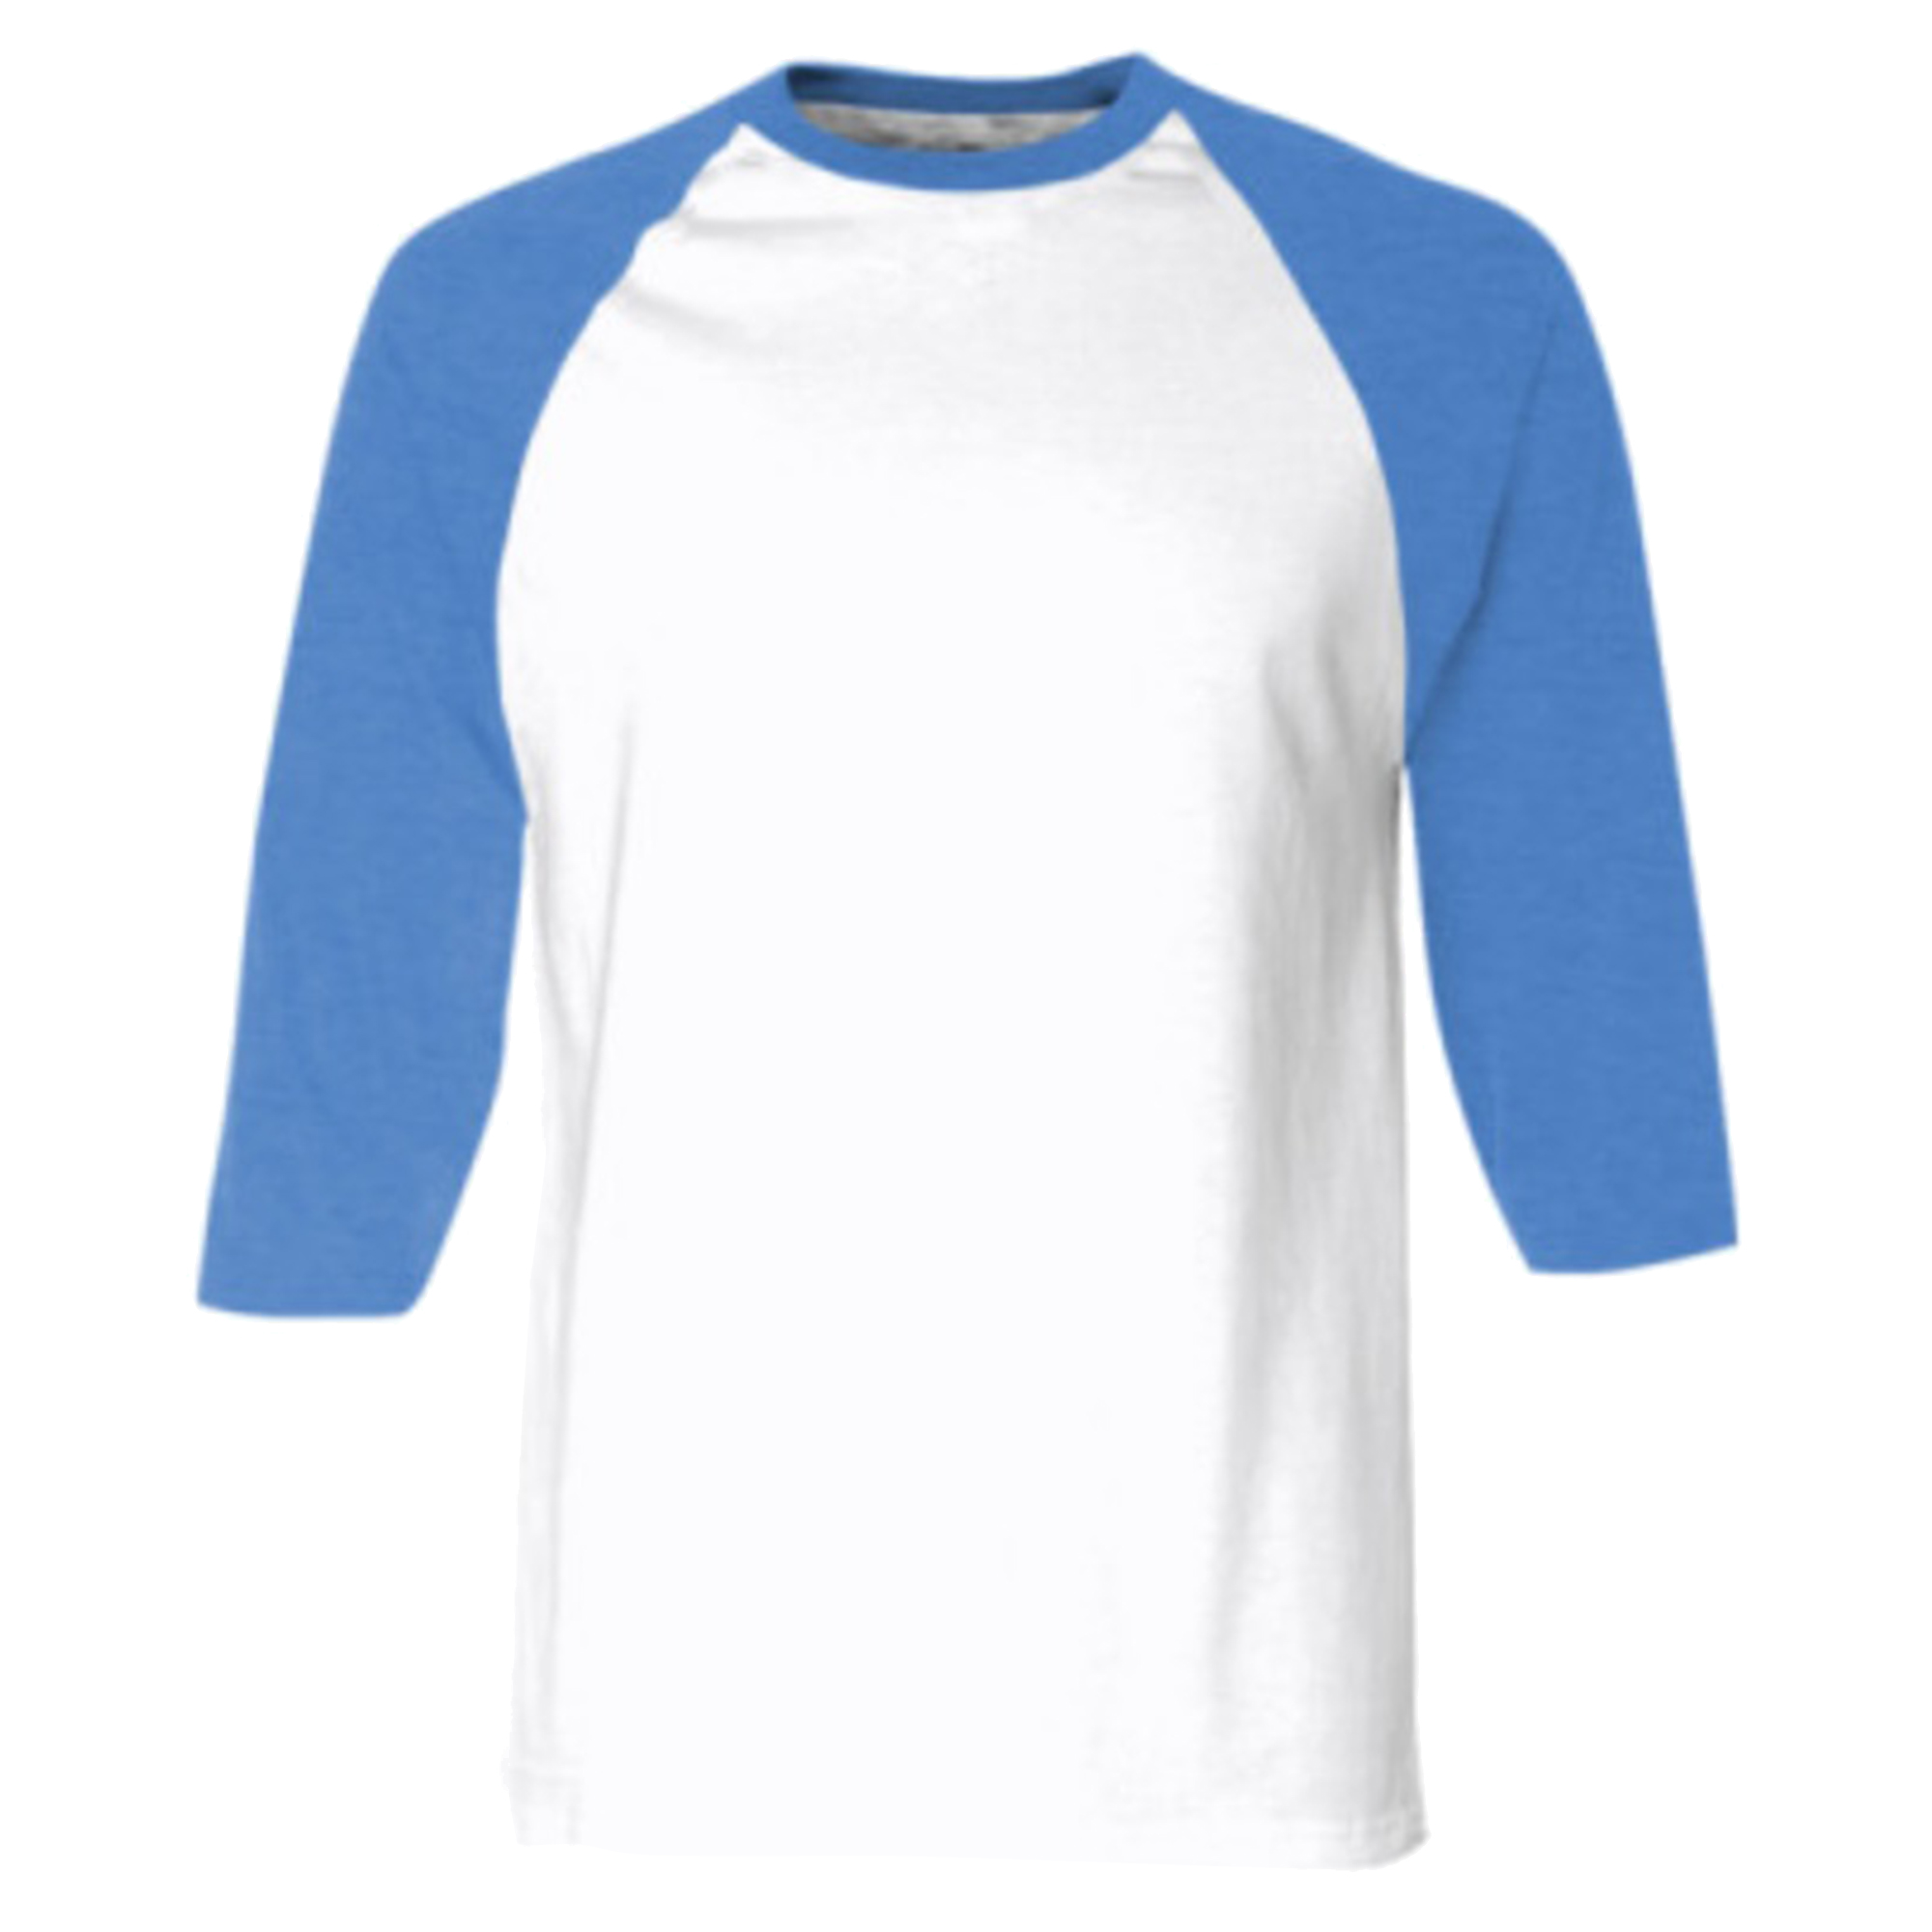 american apparel unisex contrast 3 4 length sleeve t shirt